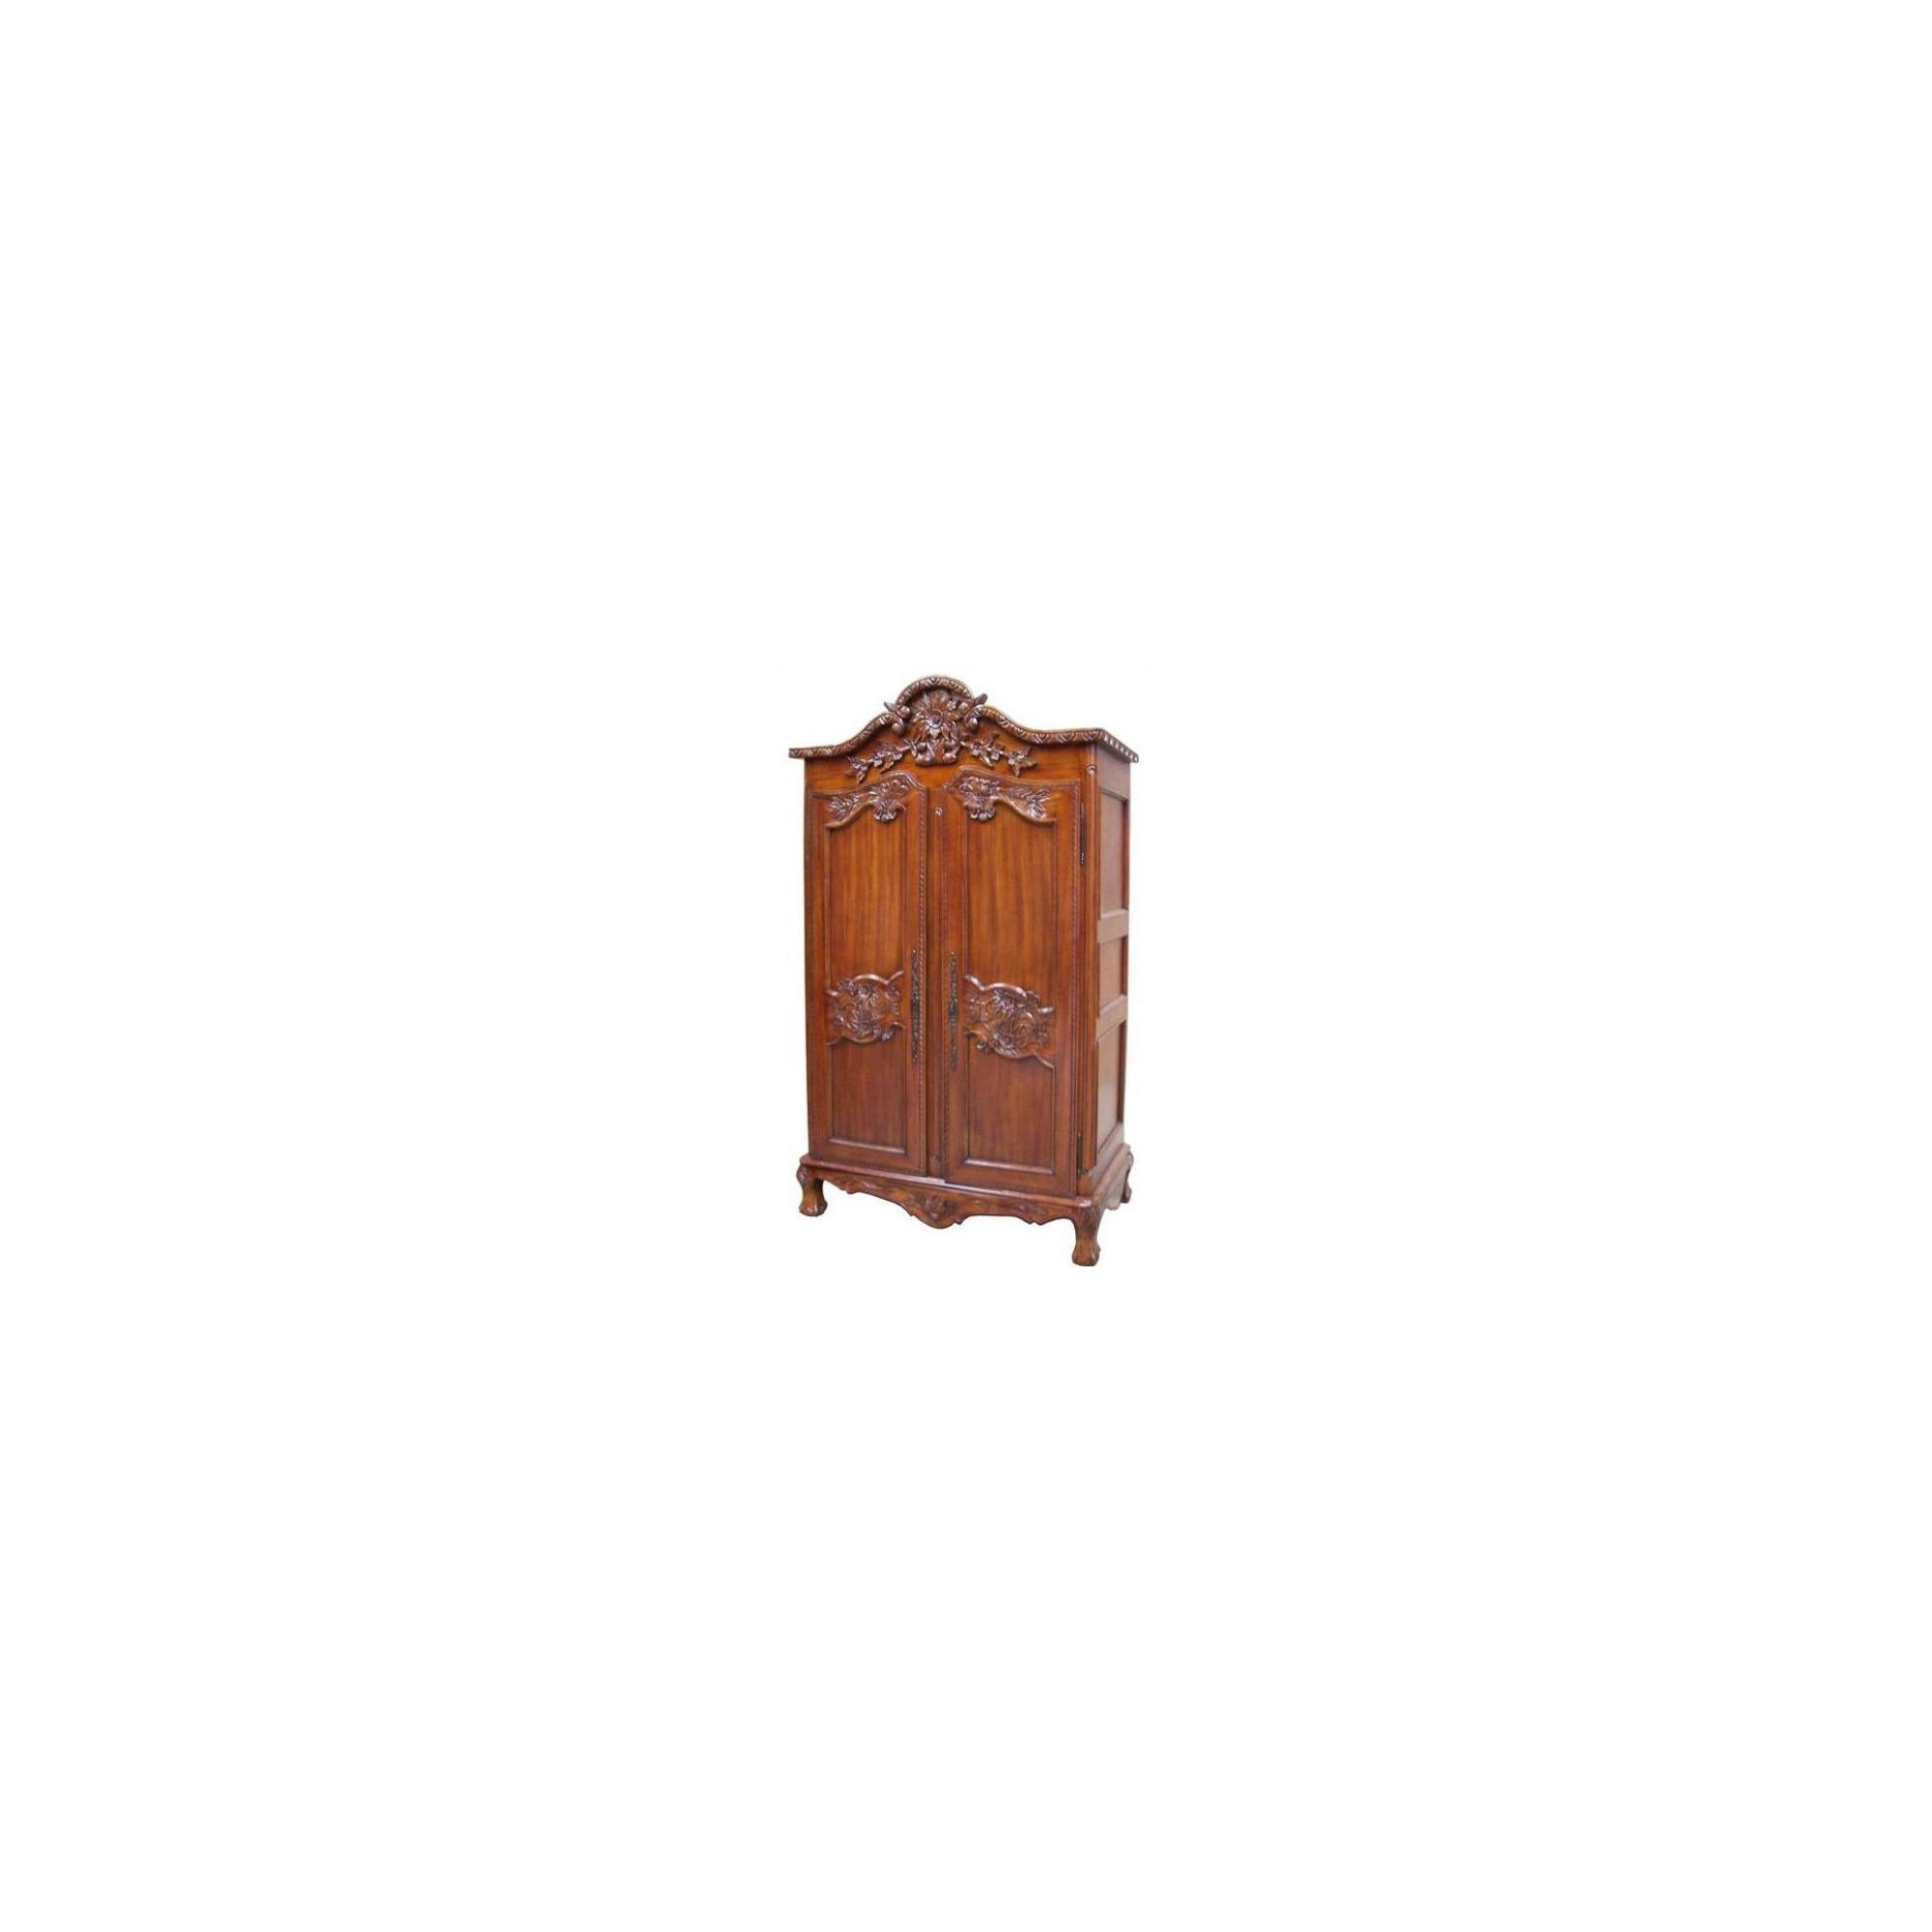 Lock stock and barrel Mahogany Colibry Armoire in Mahogany - Wax at Tesco Direct